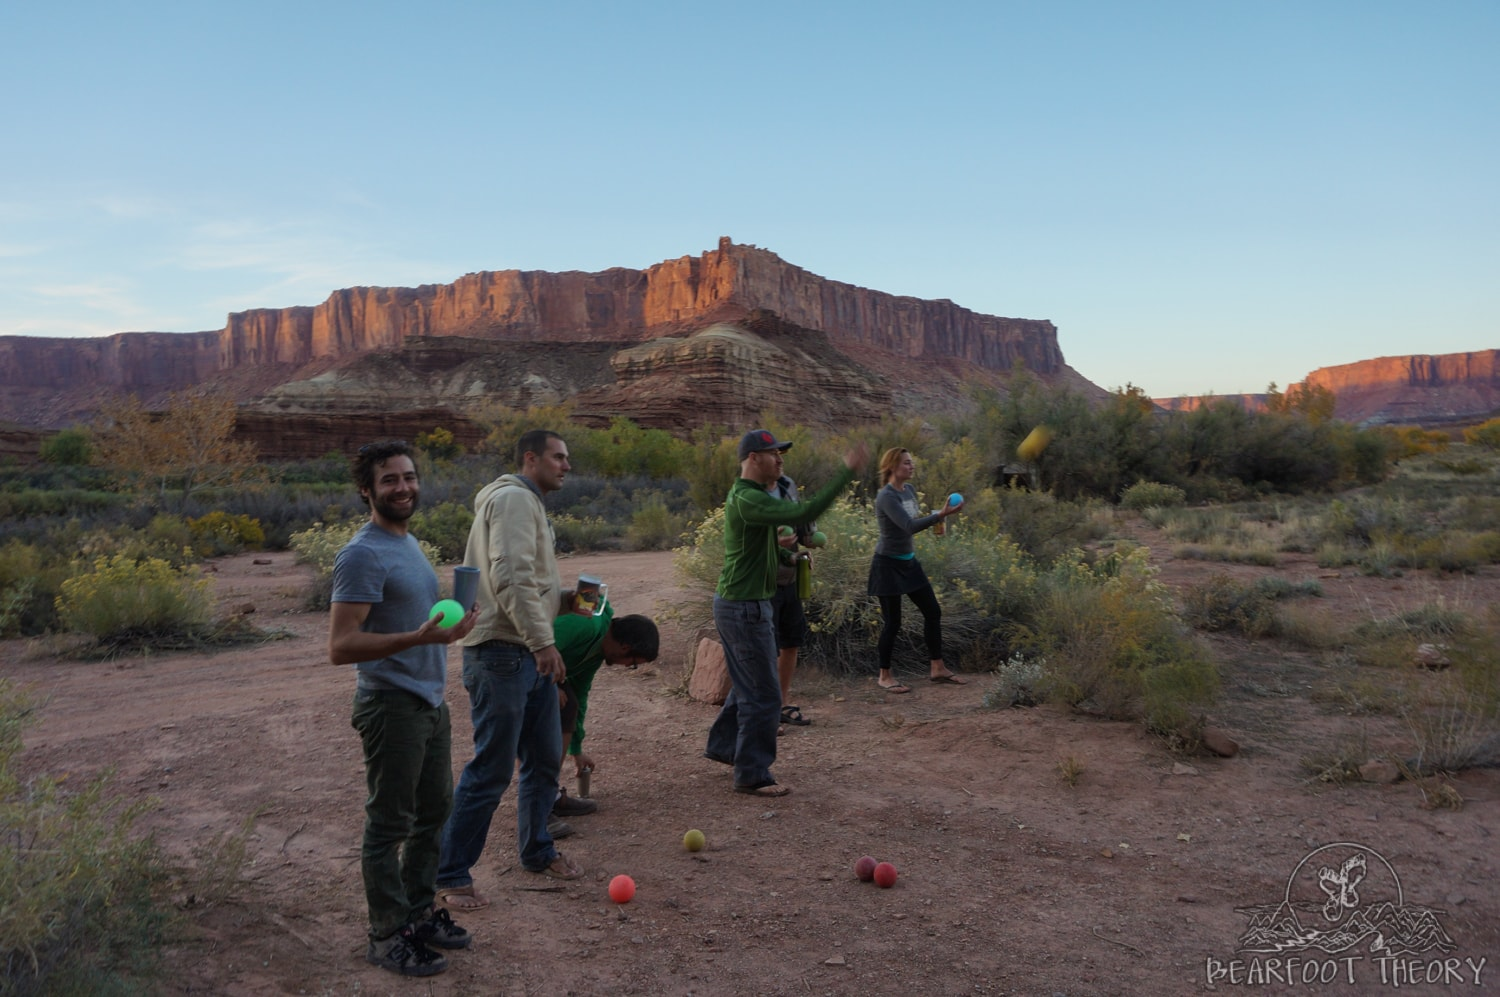 Bocce ball is one of my favorite games to play at camp